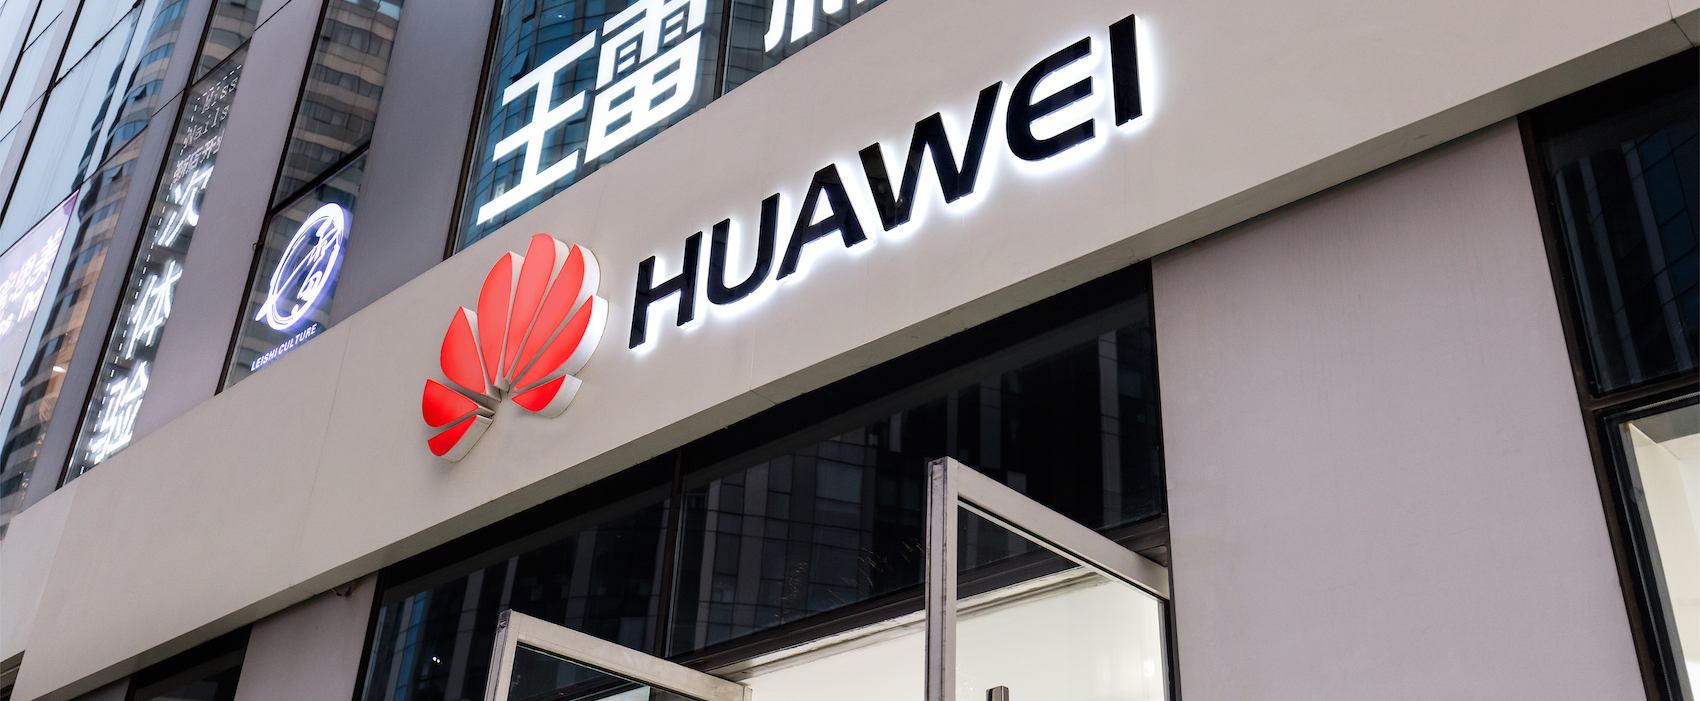 Huawei Is Building Tech That Can Stress Test Blockchains - CoinDesk